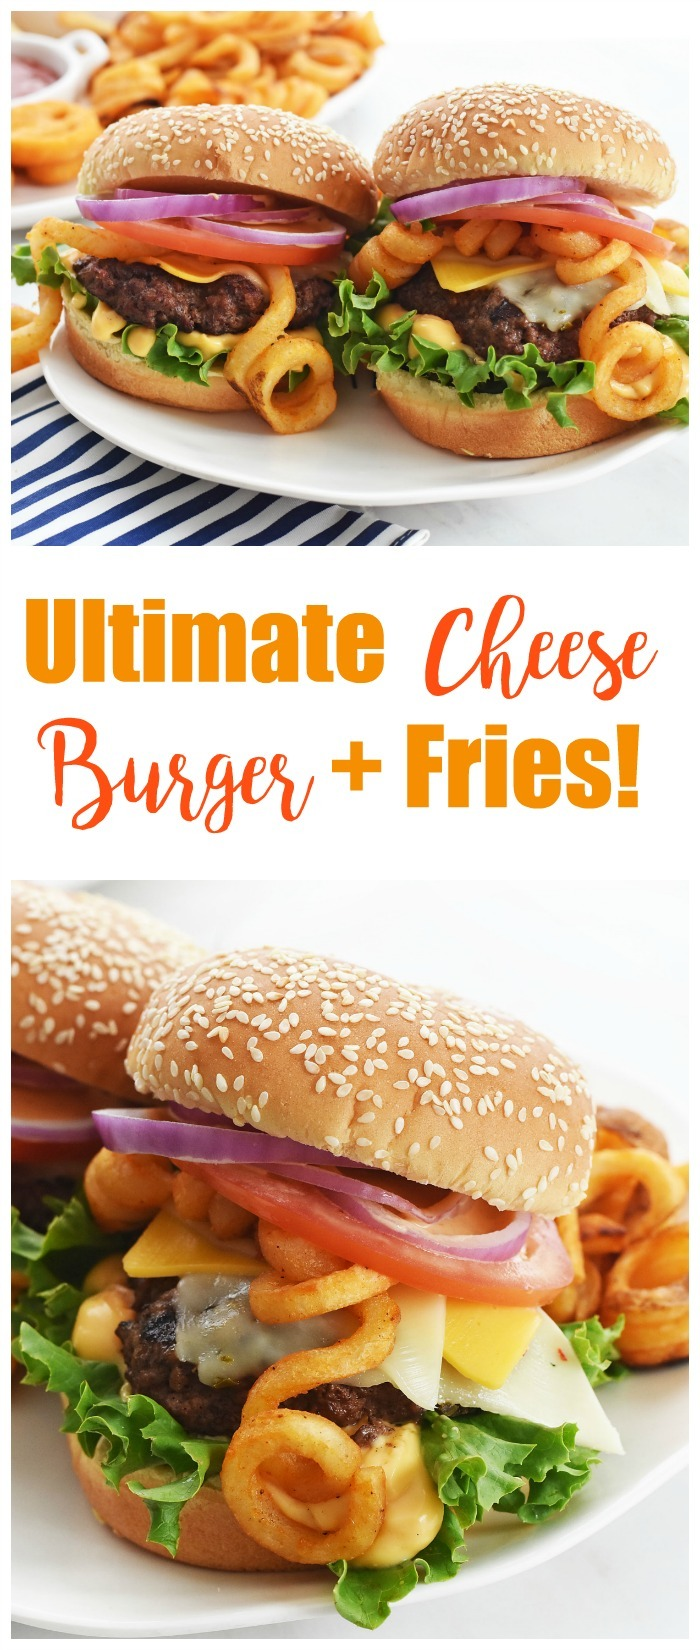 Ultimate Cheese Burger and Fries